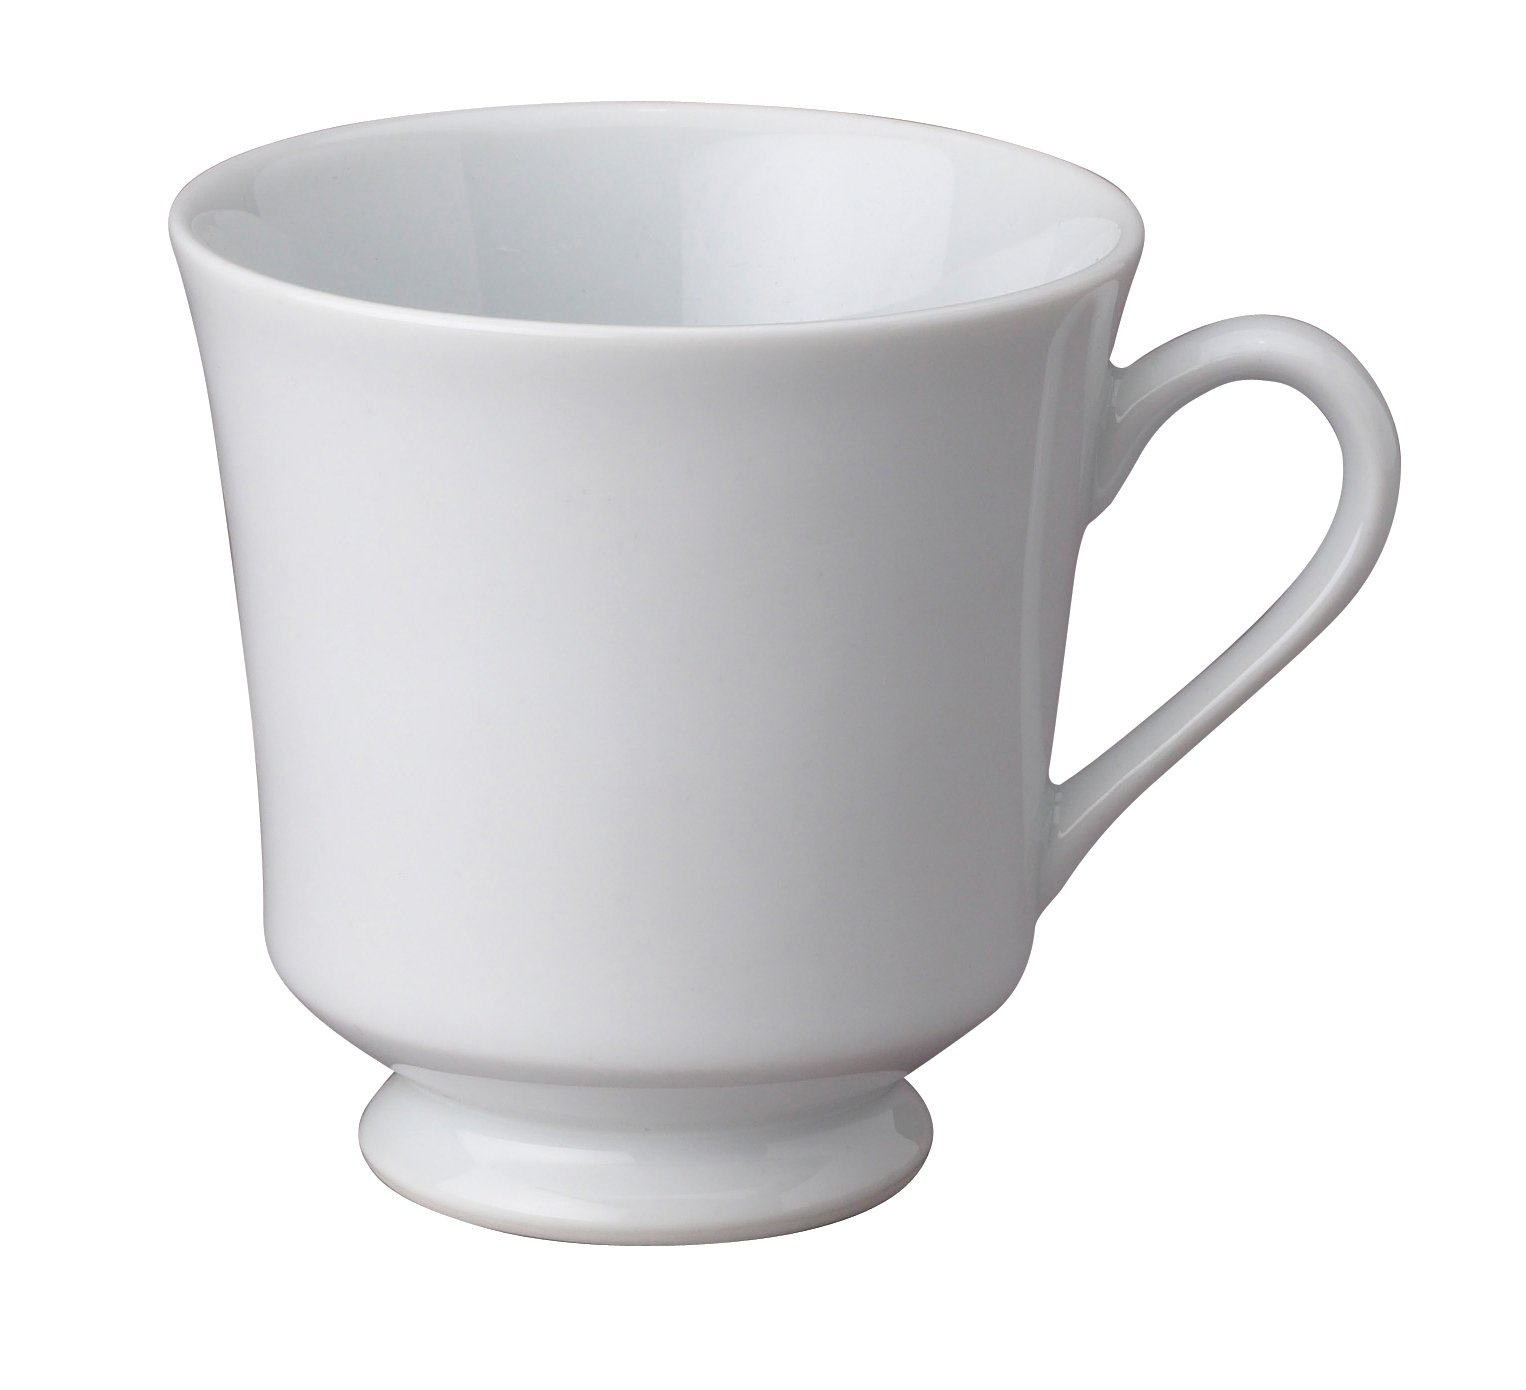 HIC 7-ounce Porcelain Footed Cup